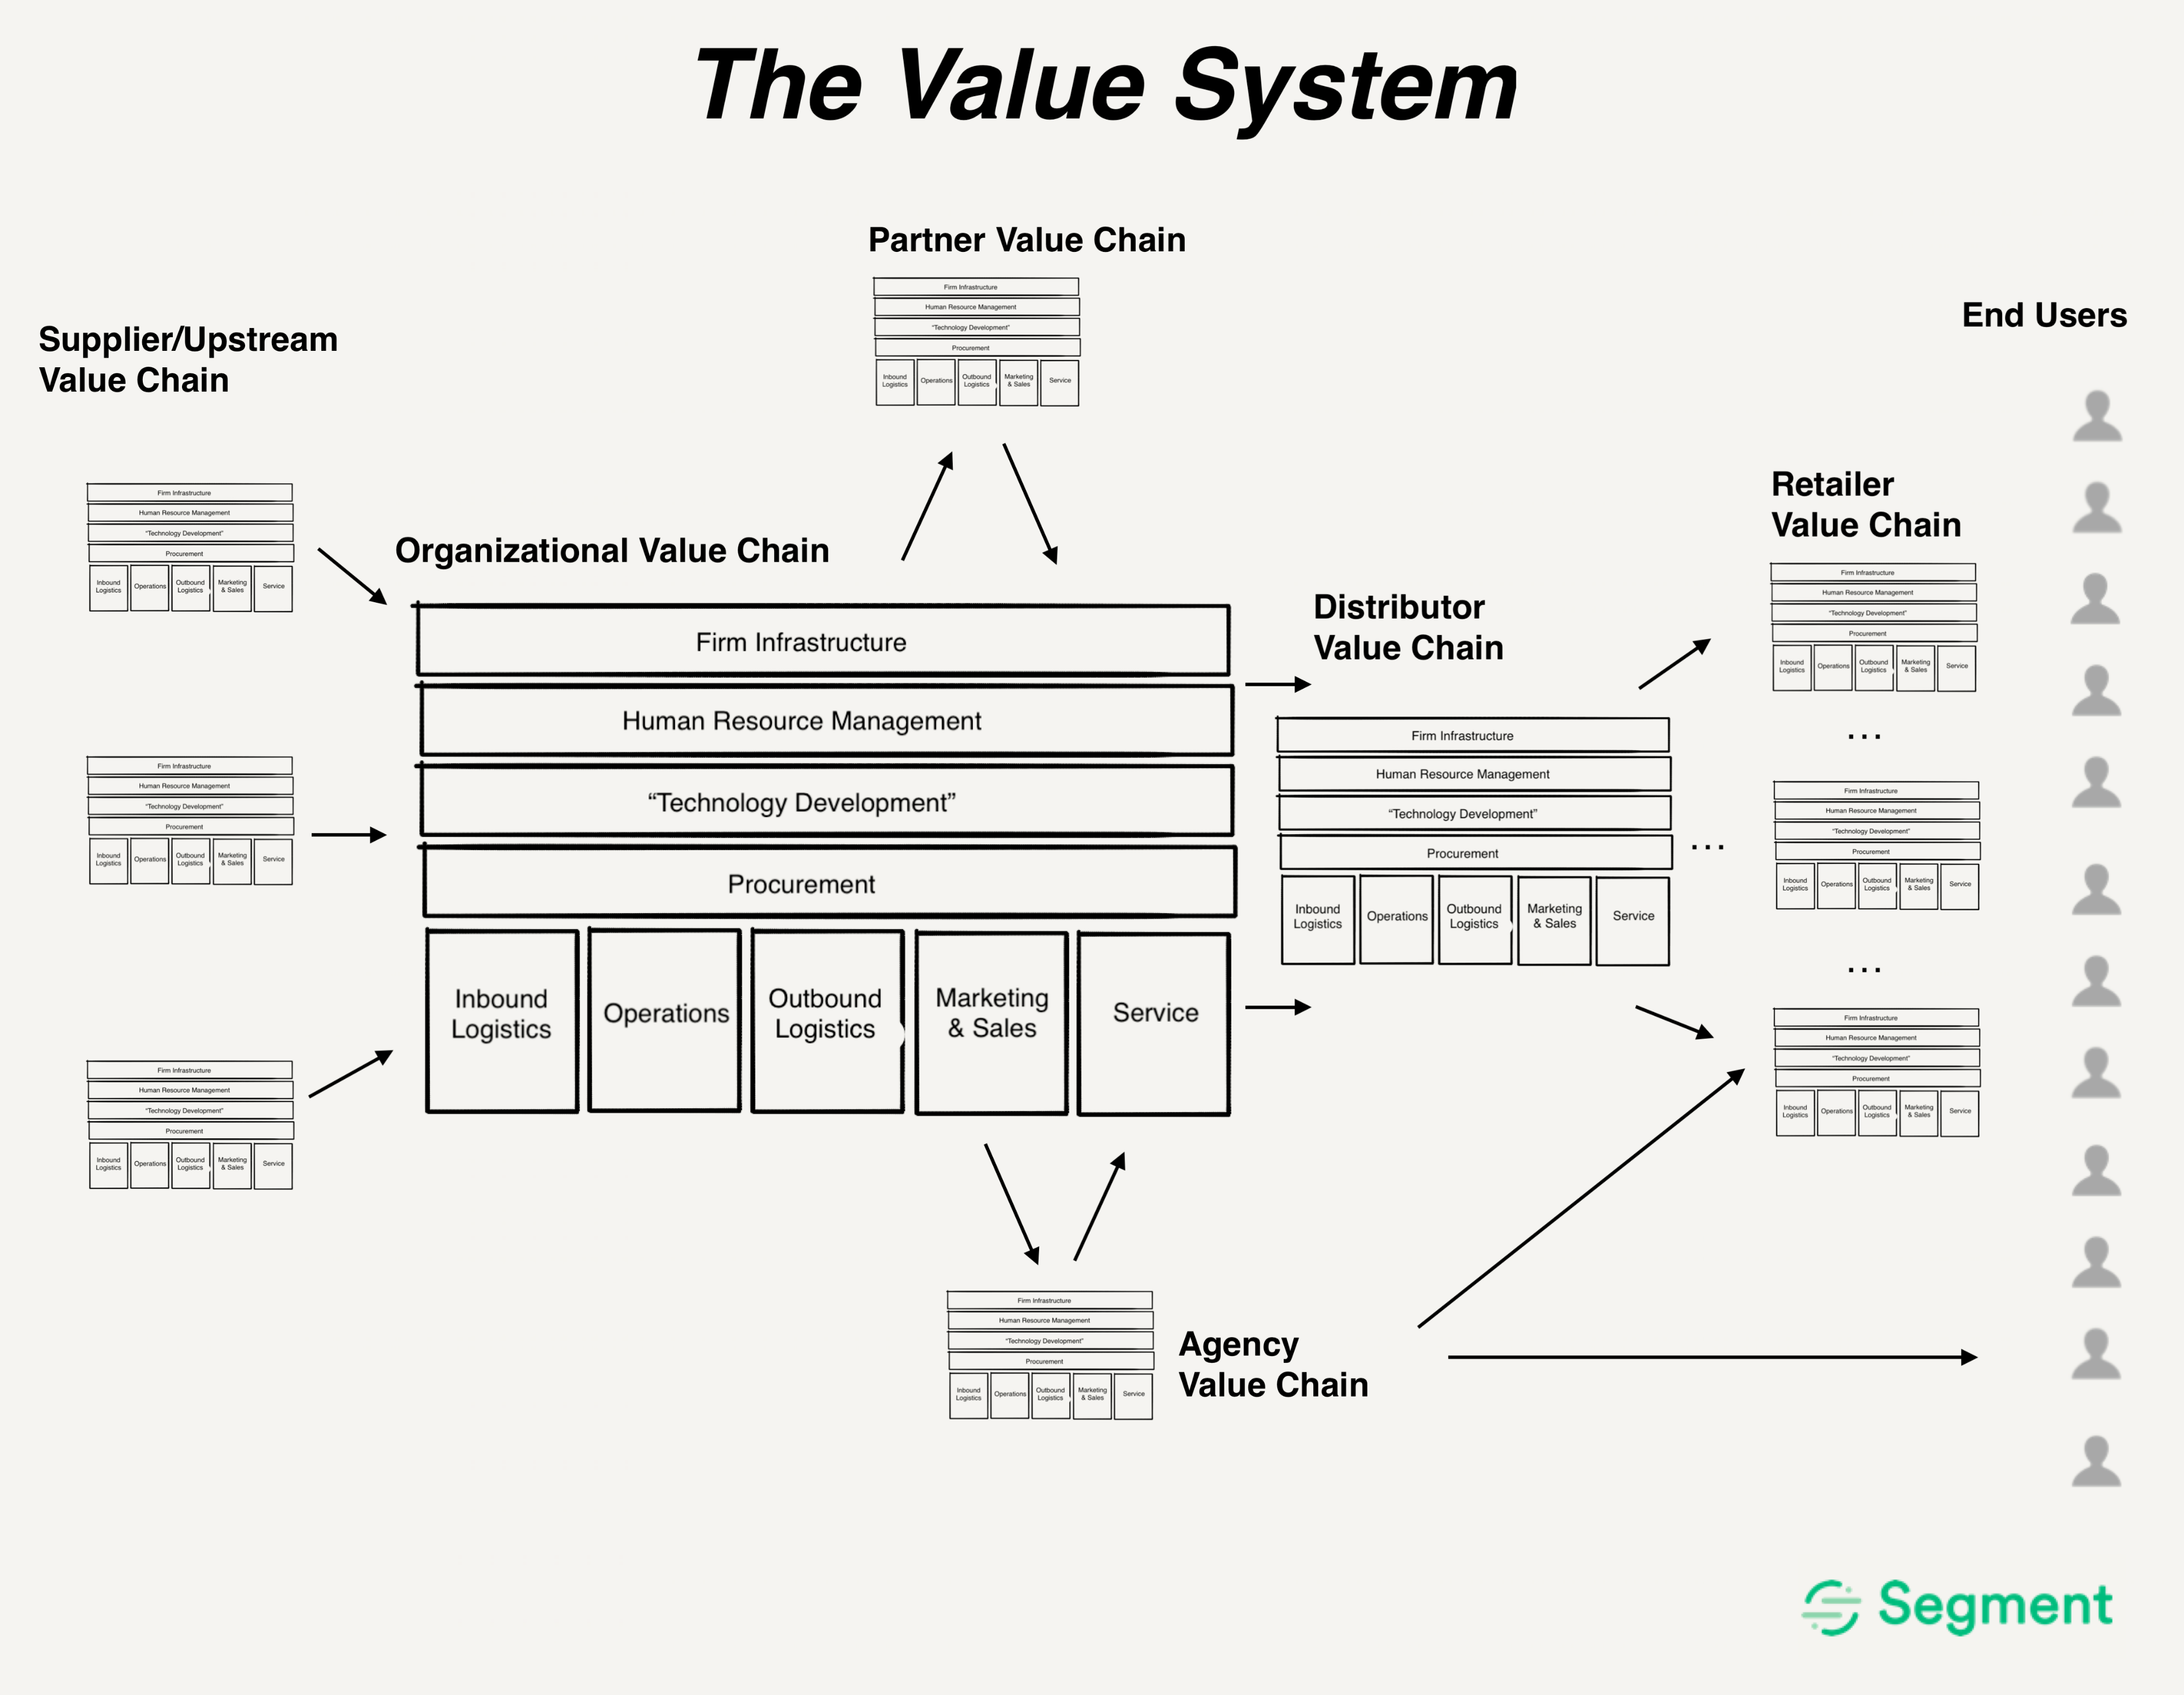 The value system from supplier to end user